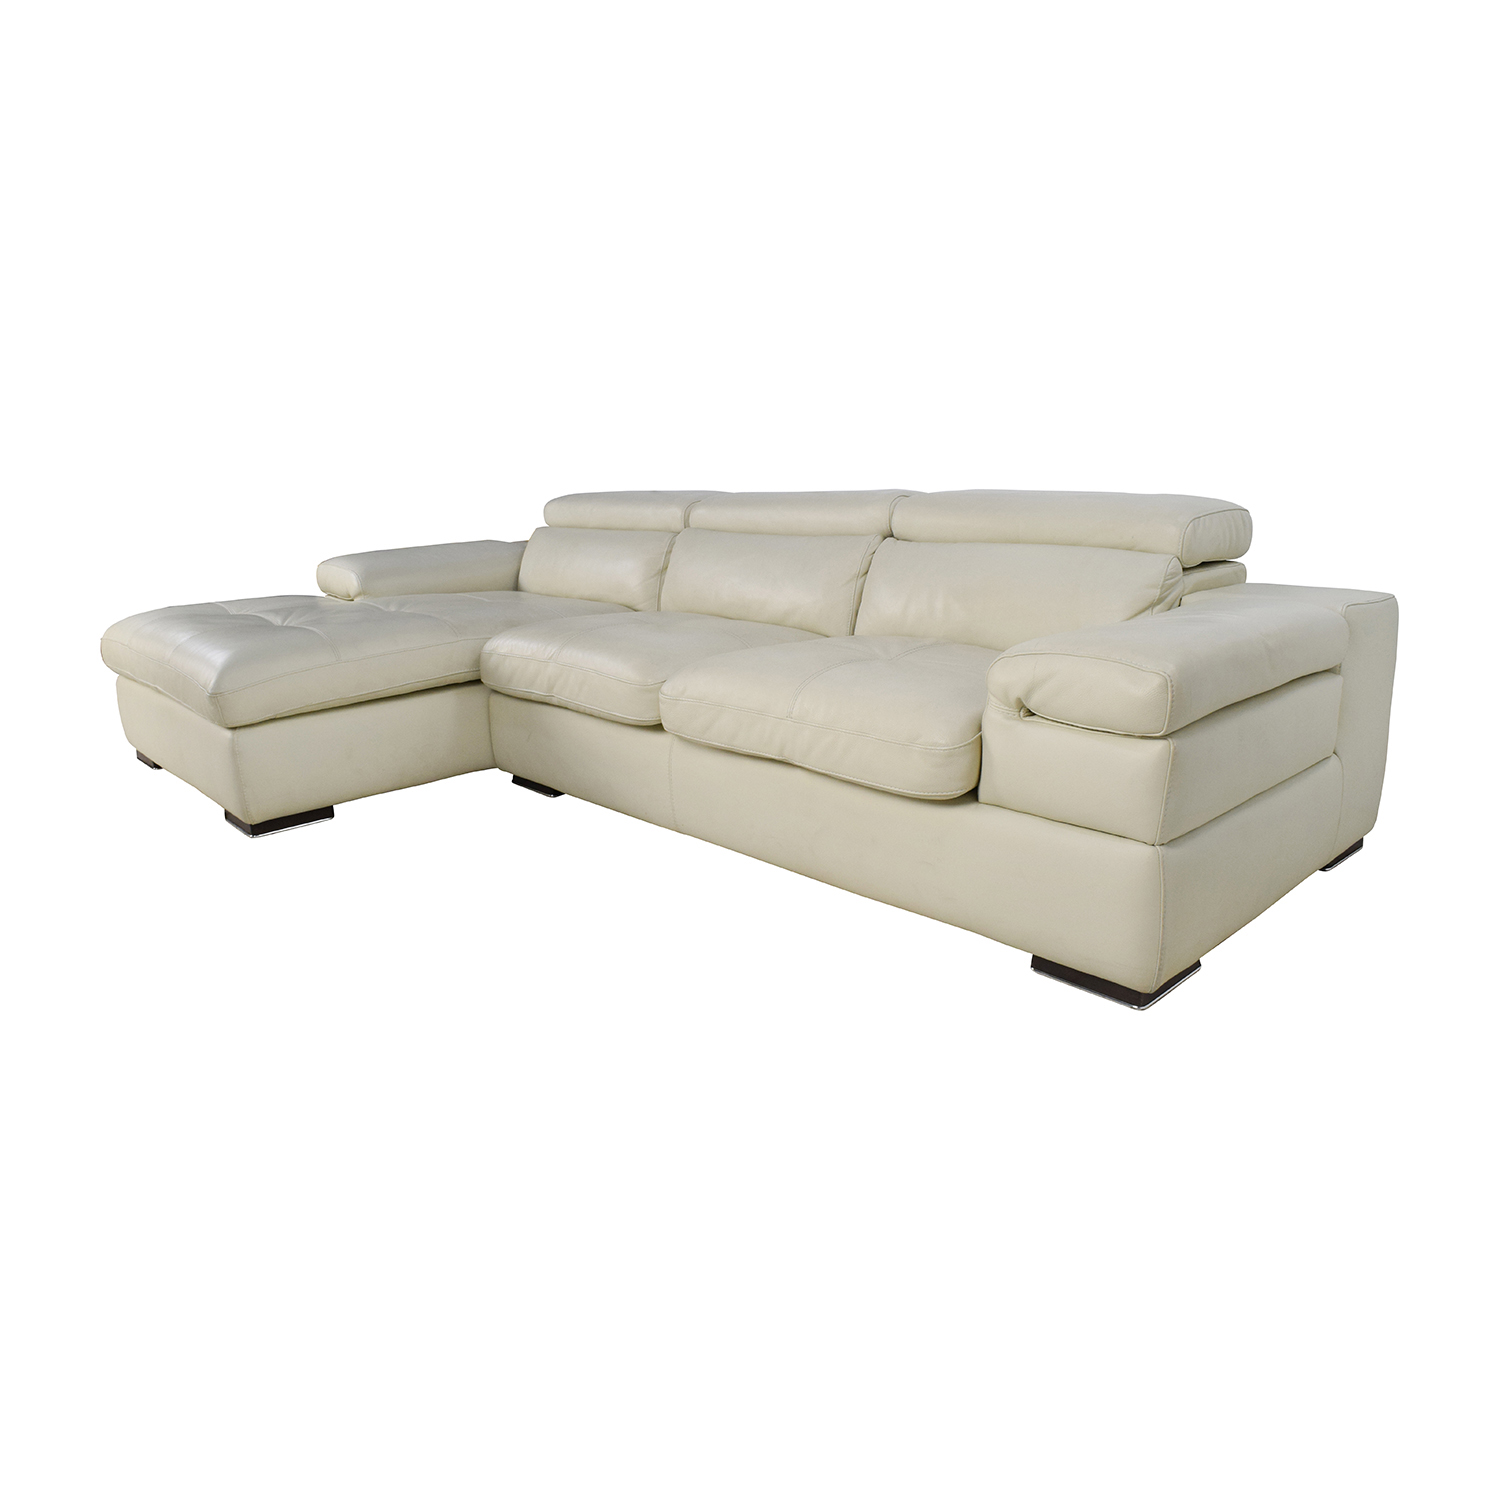 ... shop L-Shaped Cream Leather Sectional Sofa online ...  sc 1 st  Furnishare : dunham sectional - Sectionals, Sofas & Couches